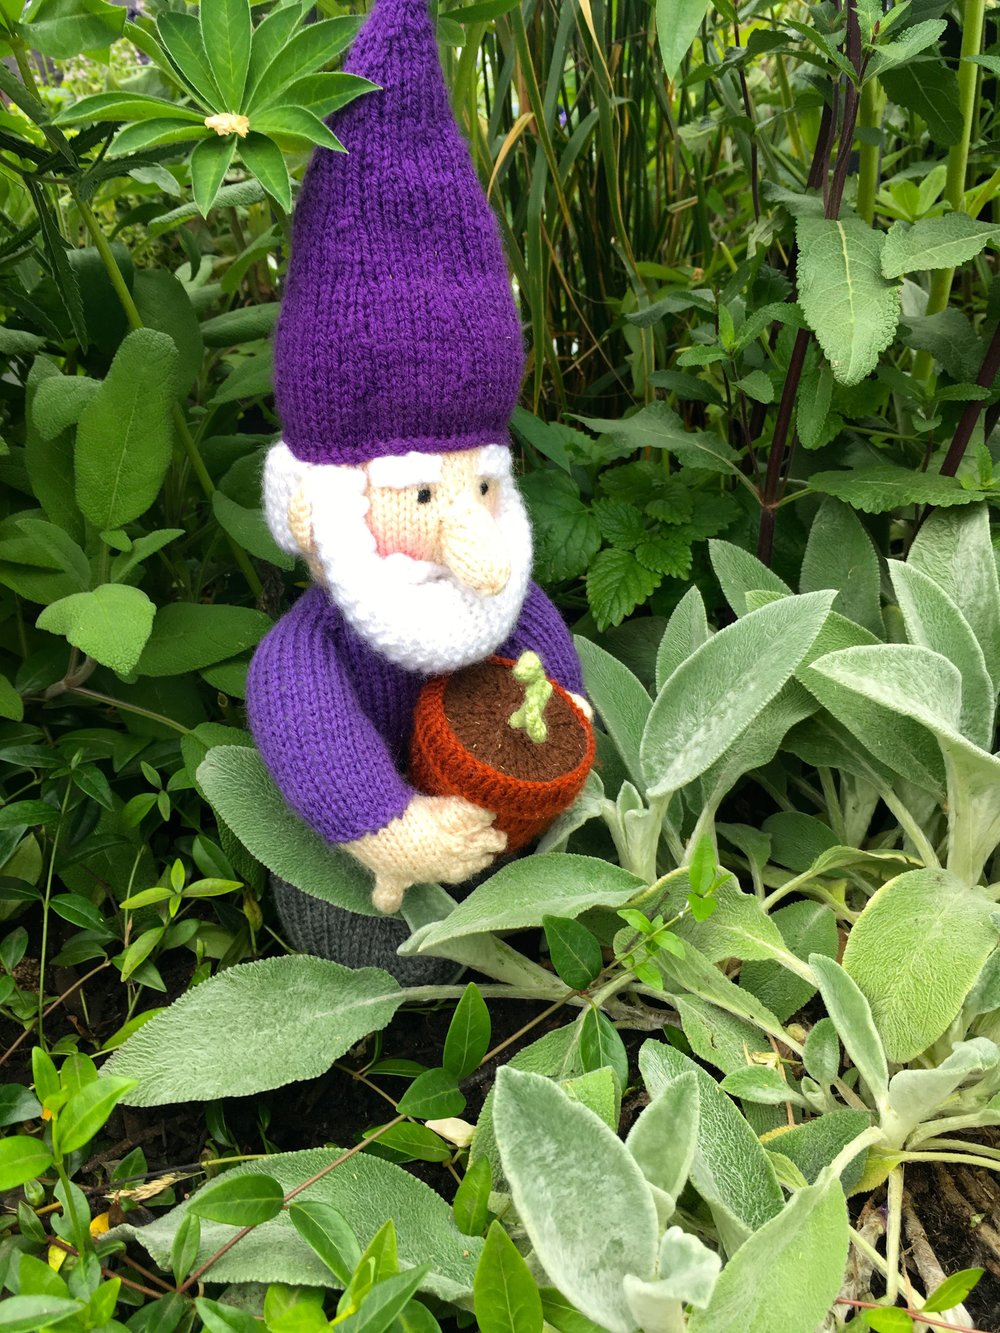 A purple knitted gnome, of course